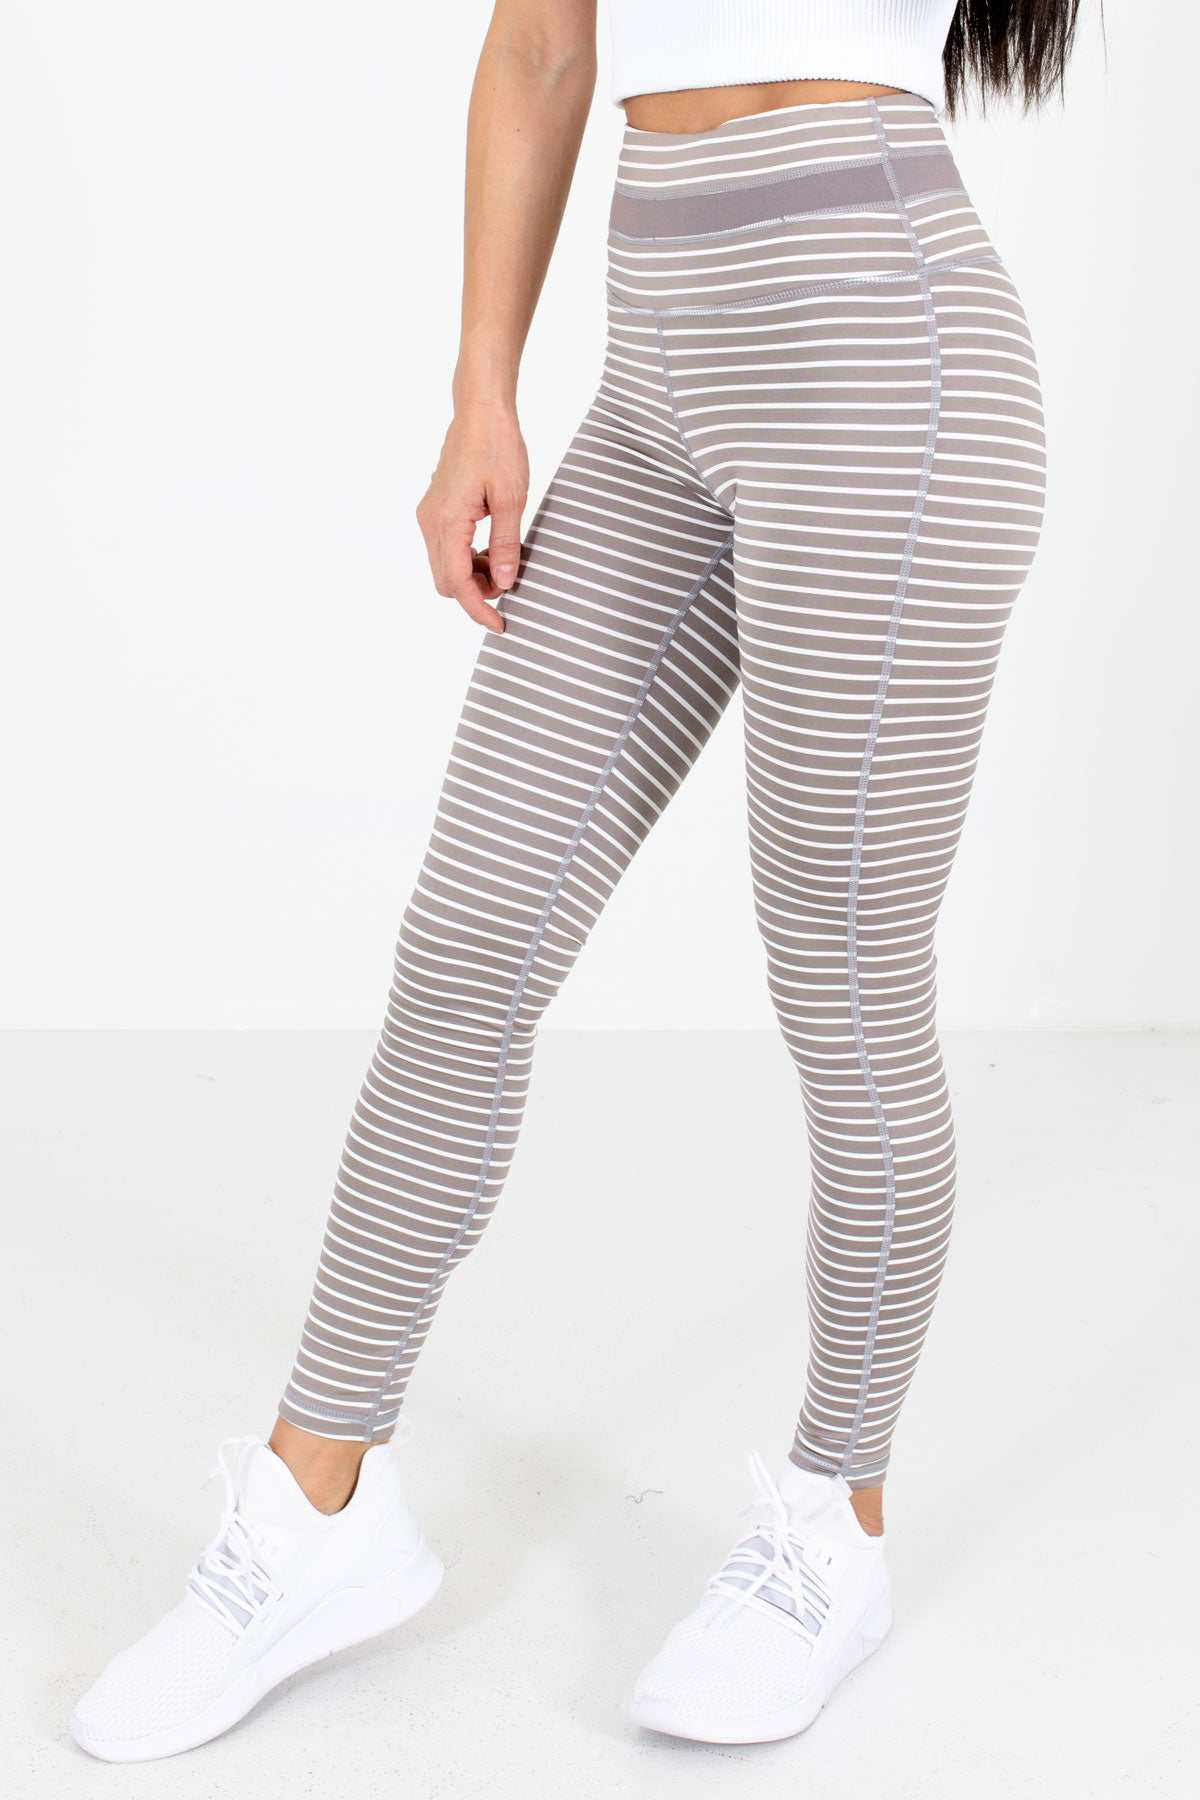 Light Purple and White Striped Active Boutique Leggings for Women